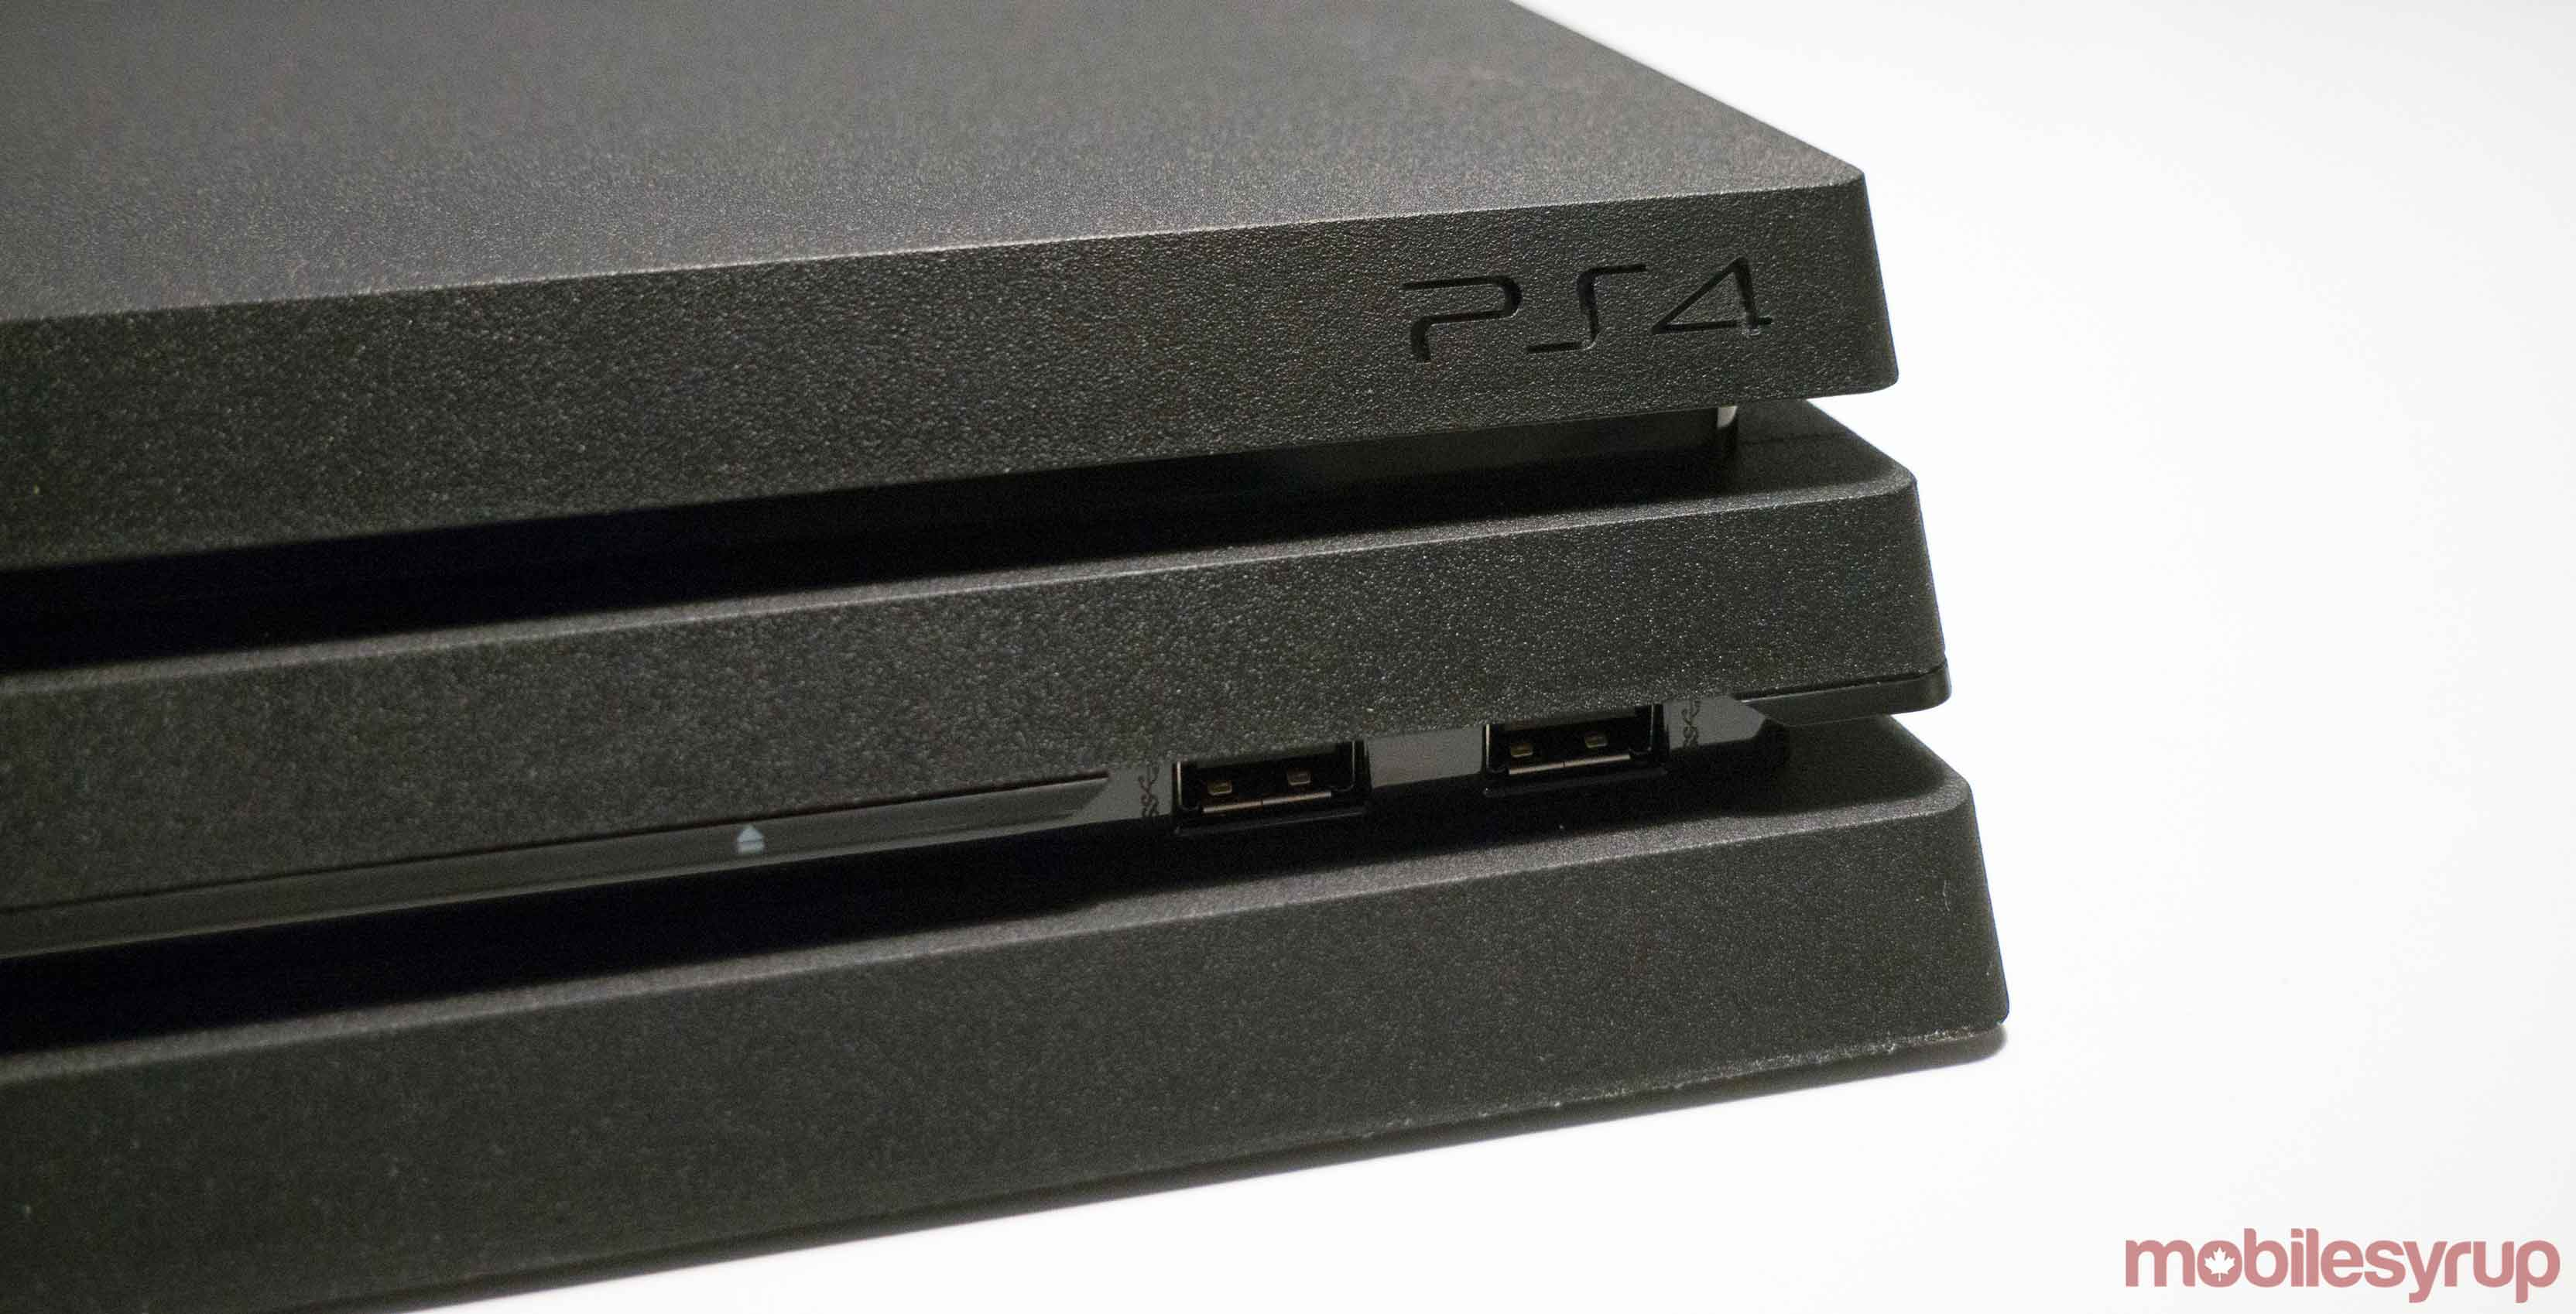 There's bad news about PlayStation 5 launch